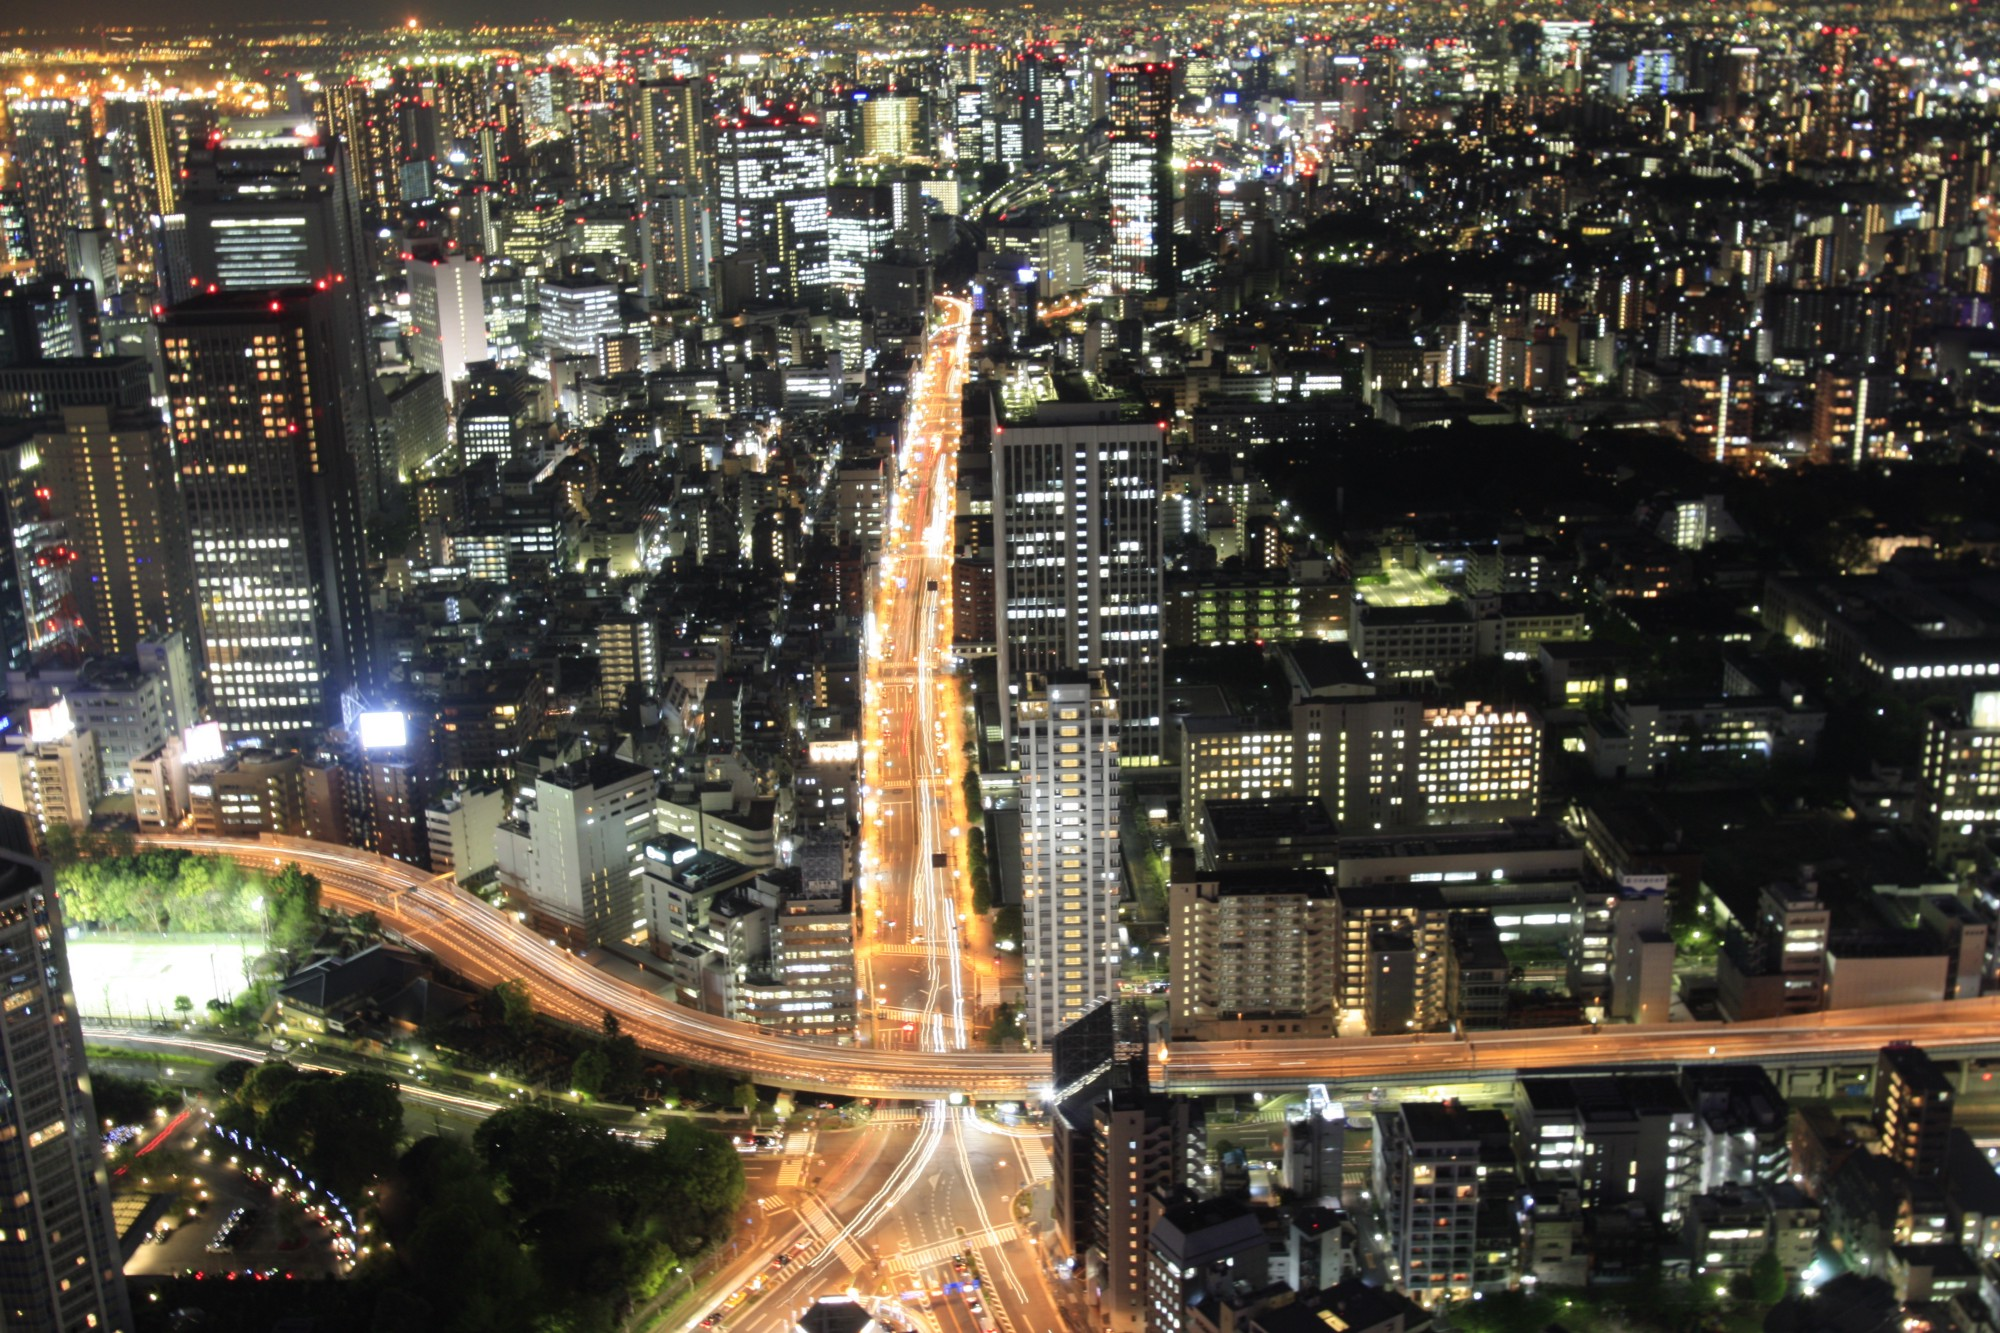 Tokyo Has Numbers Of High Buildings And Some Them Have Observation Decks To Gaze The Panoramic View City Once You Get Top